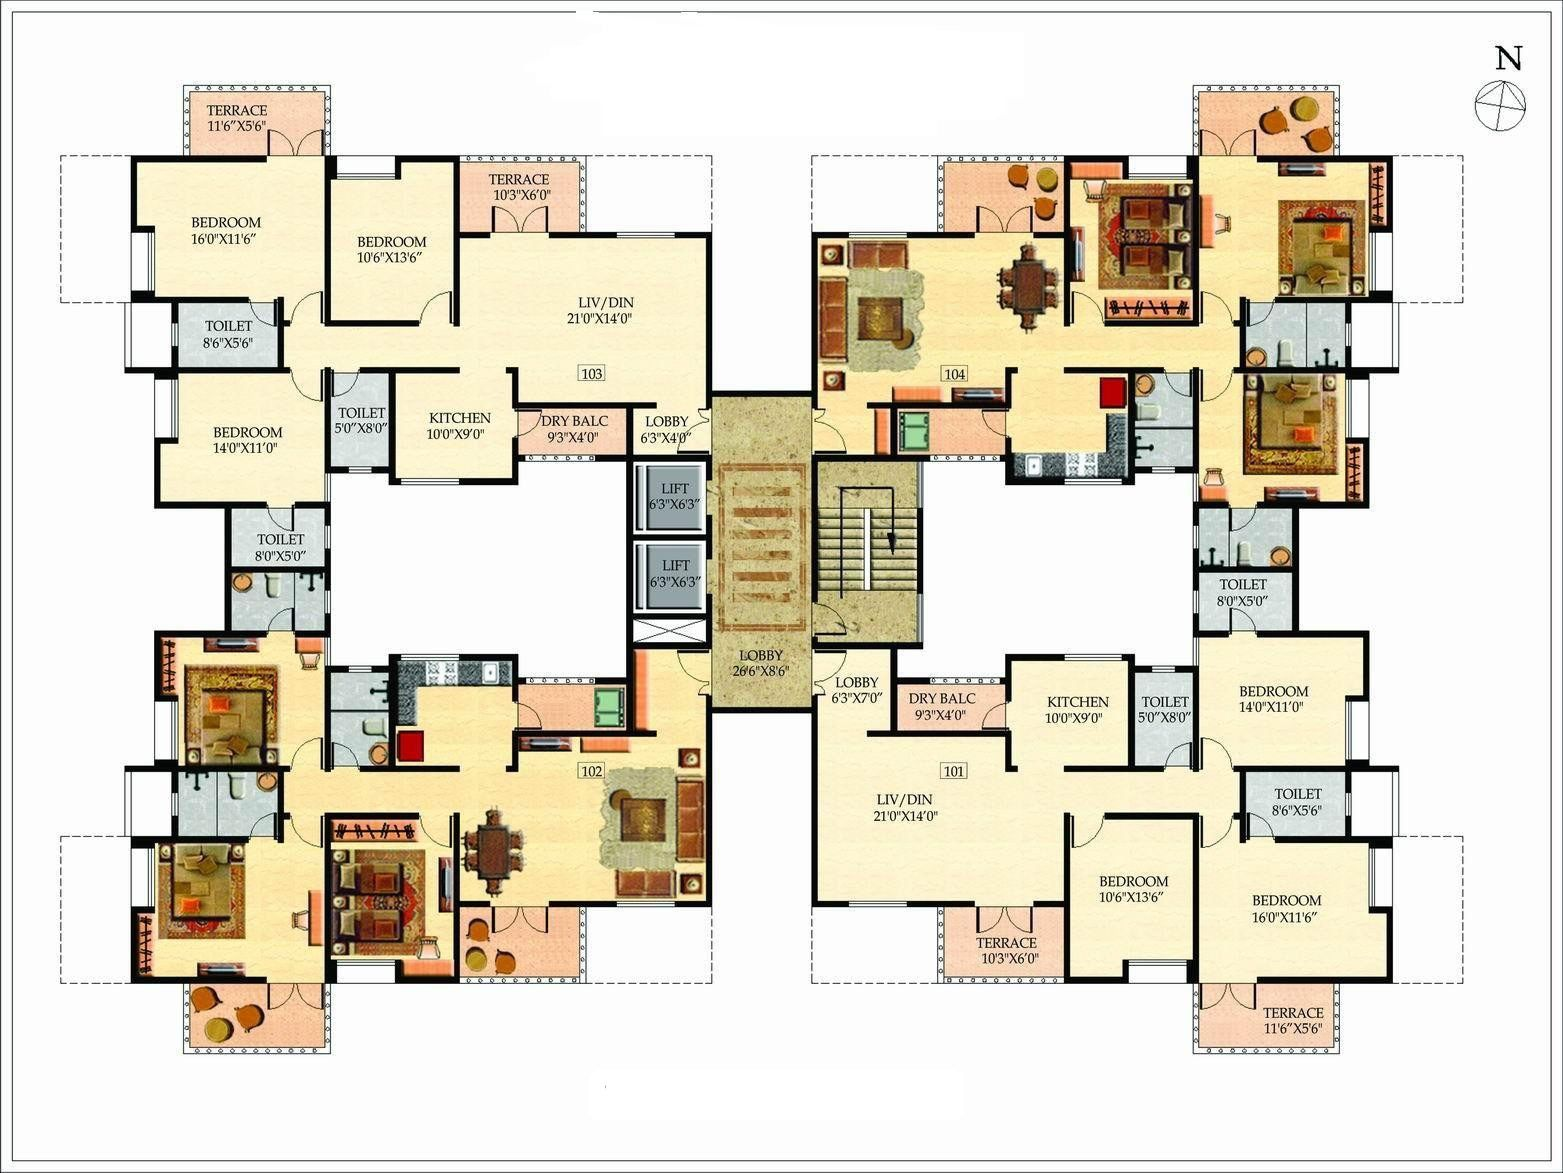 6 bedroom mansion floor plans design ideas 2017 2018 pinterest mansion bedrooms and Floor plan design website